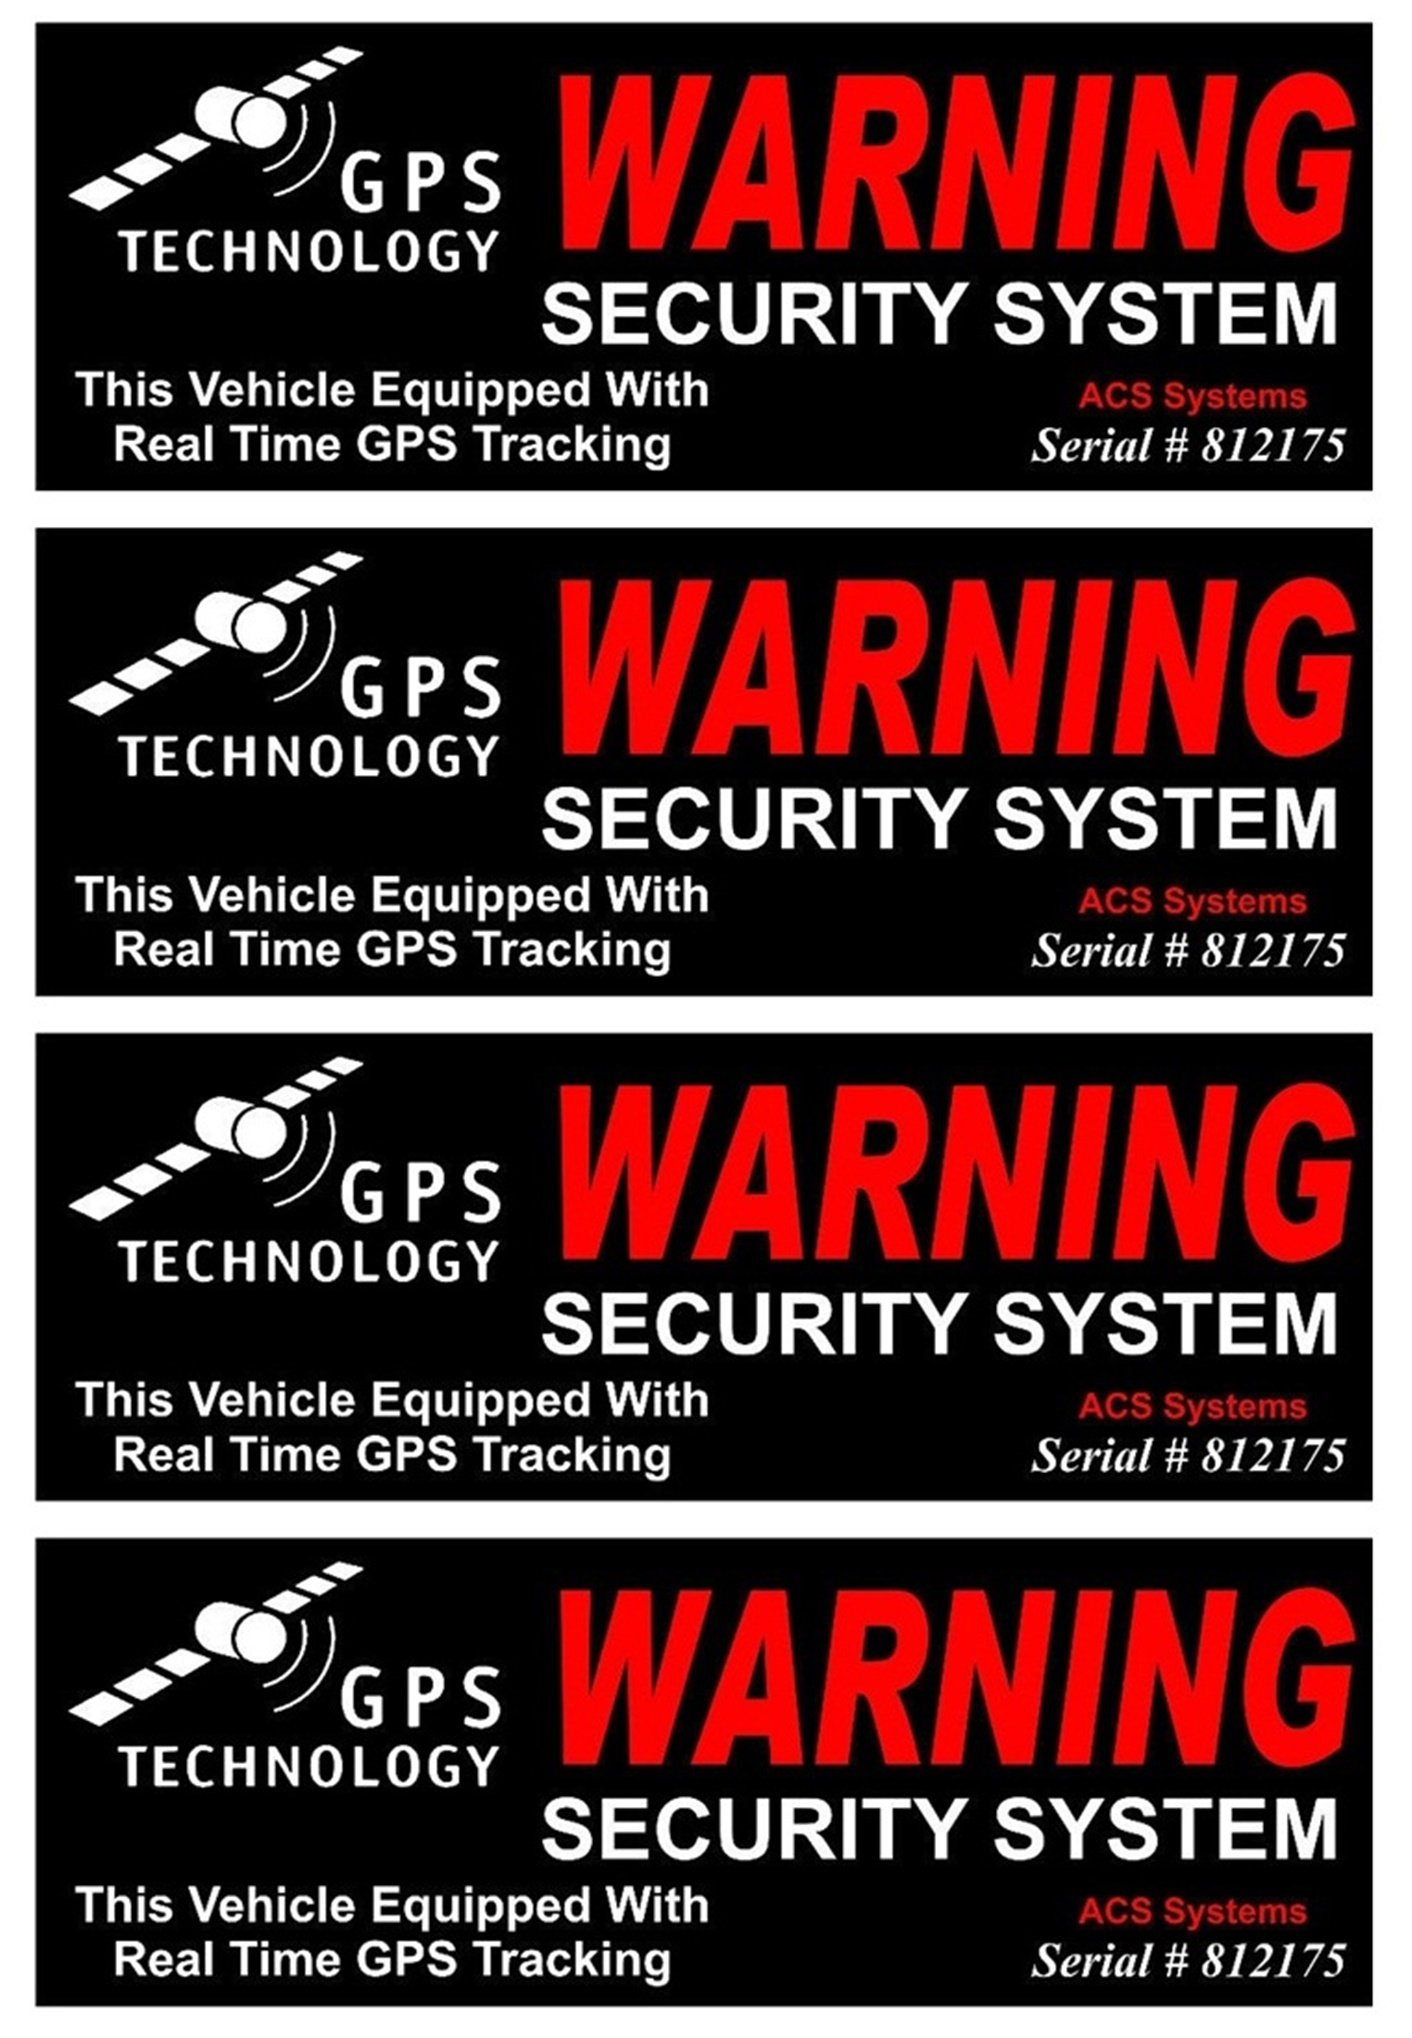 4Set Reliable Unique Warning GPS Tracking Security System Technology This Vehicle Equipped with Real Time Outside Adhesive Stickers Sign CCTV Reflective Protected House Window Premises Size 4.5''x1.5''